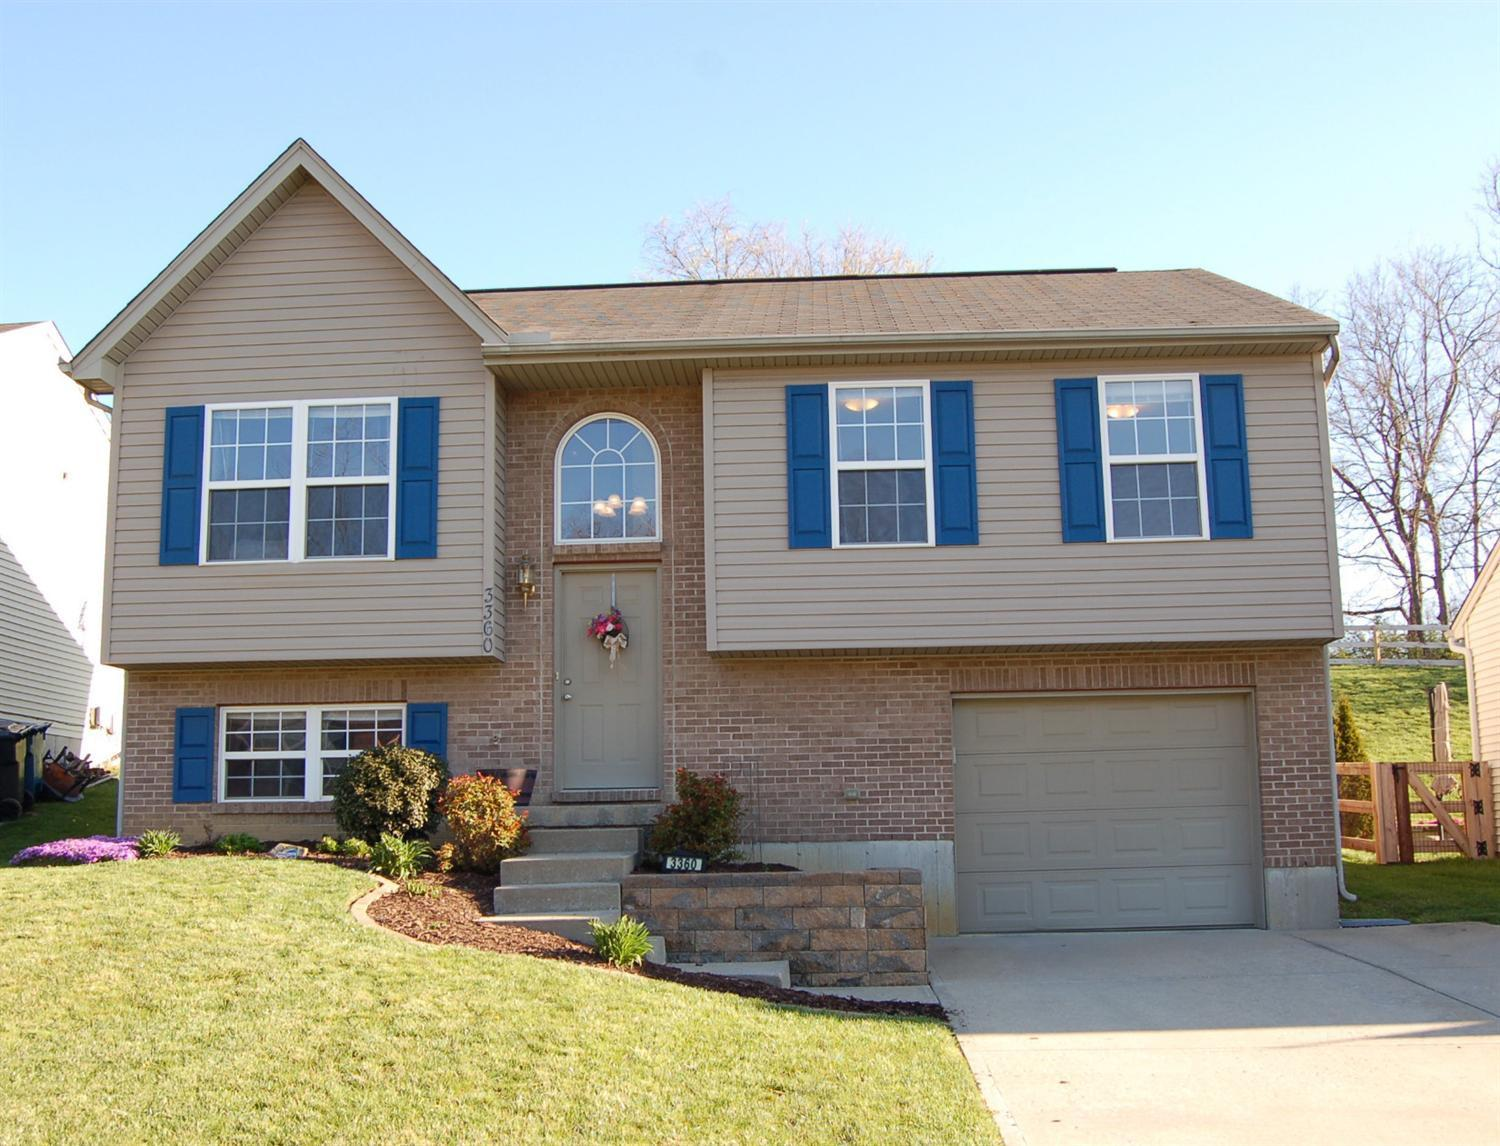 Photo 1 for 3360 Spruce Tree Ln Erlanger, KY 41018